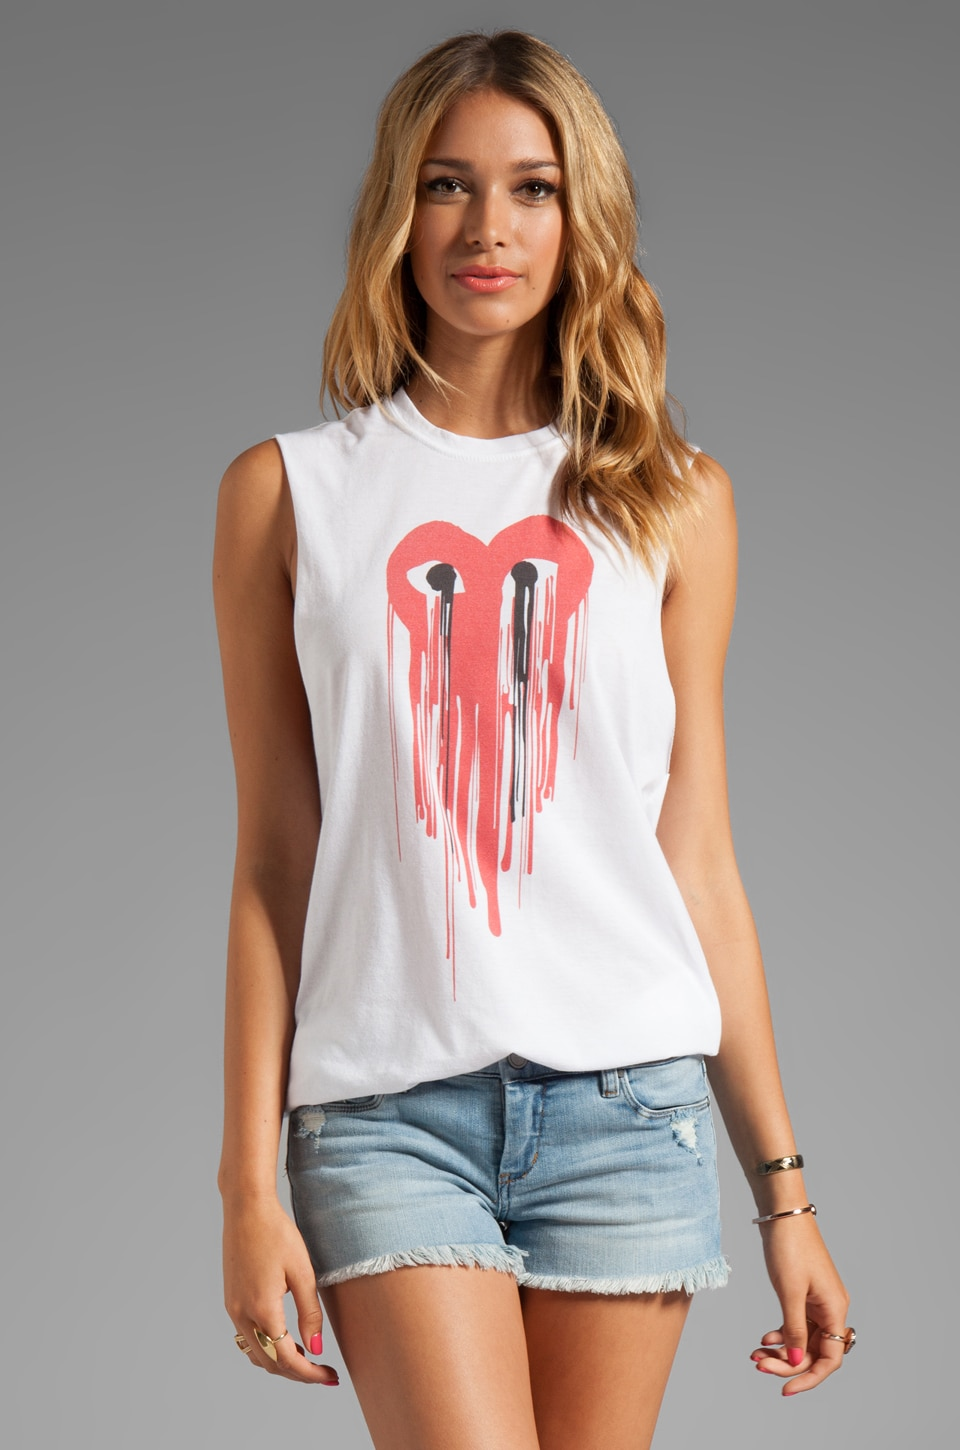 The Laundry Room Comme Drip Carcone Muscle Tee in White